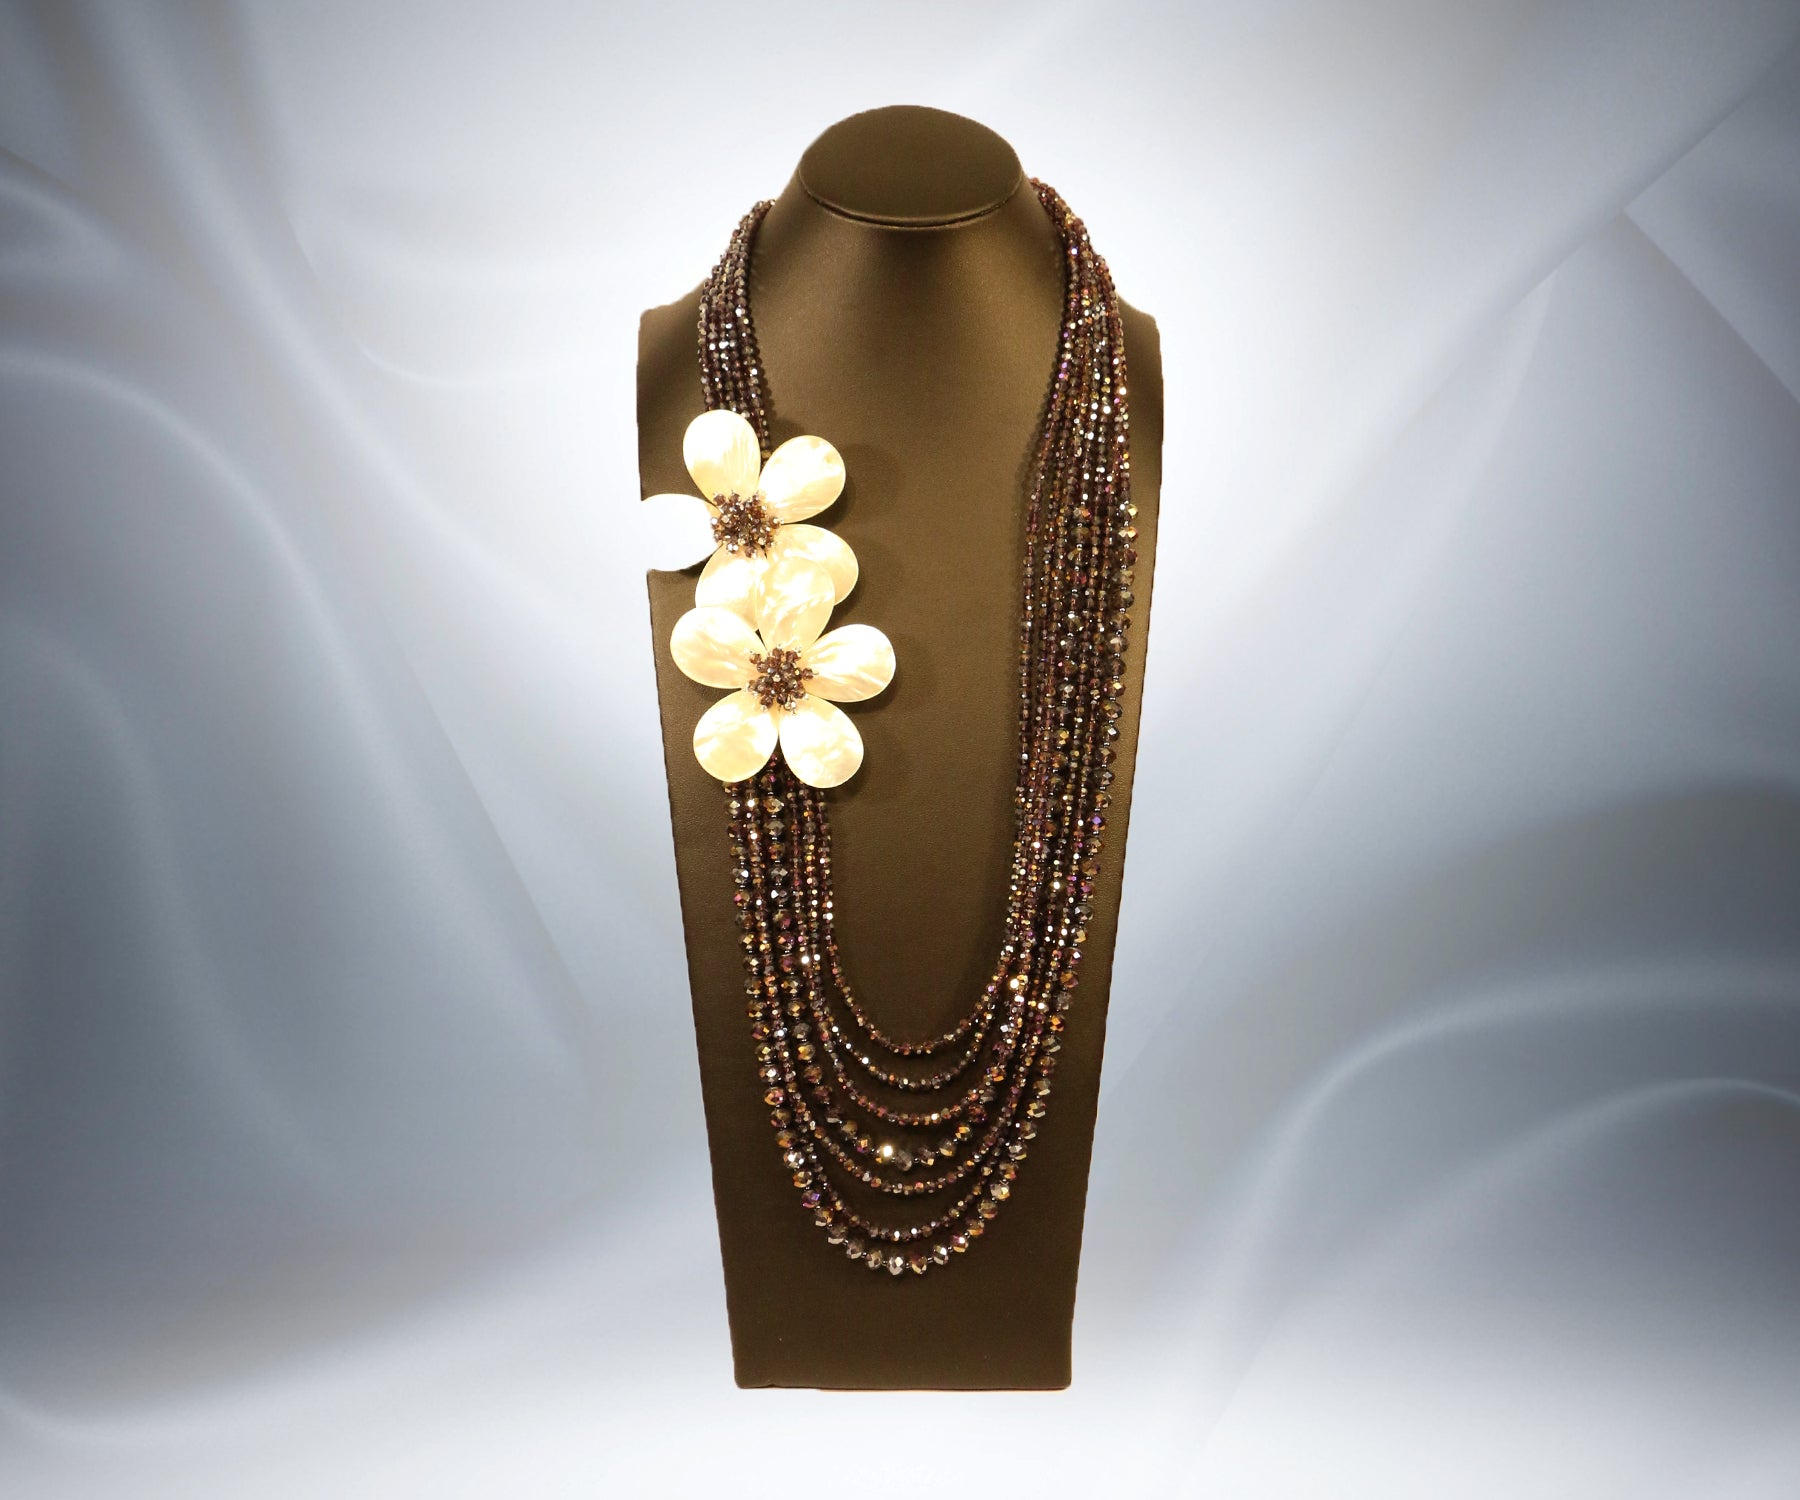 Mother of Pearl flower Necklace - Tibet Arts & Healing